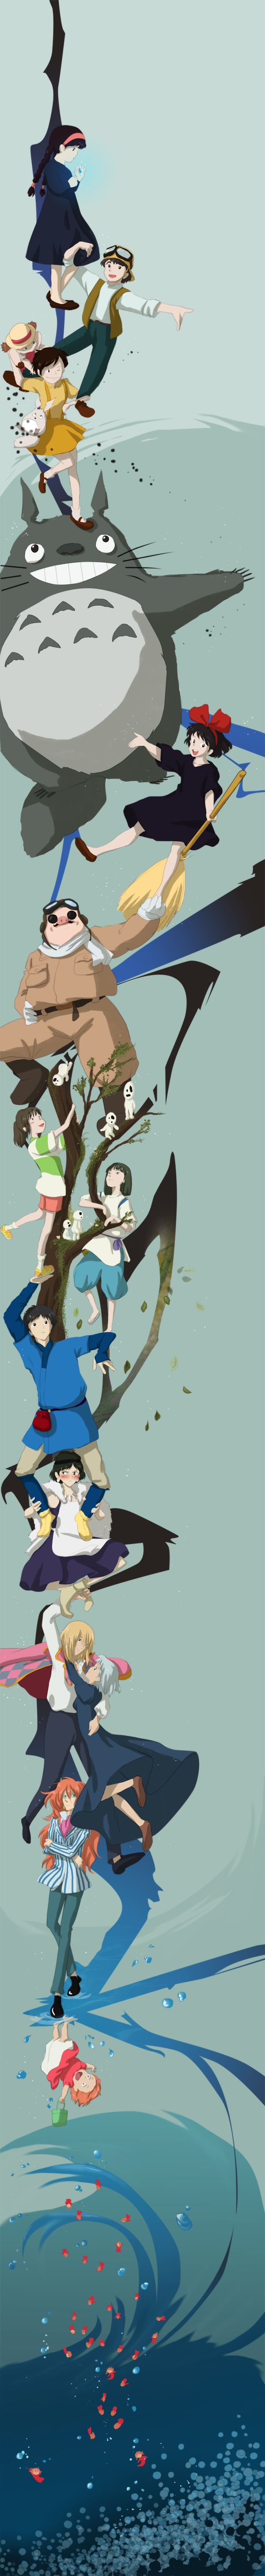 Miyazaki! Need this poster for May's room